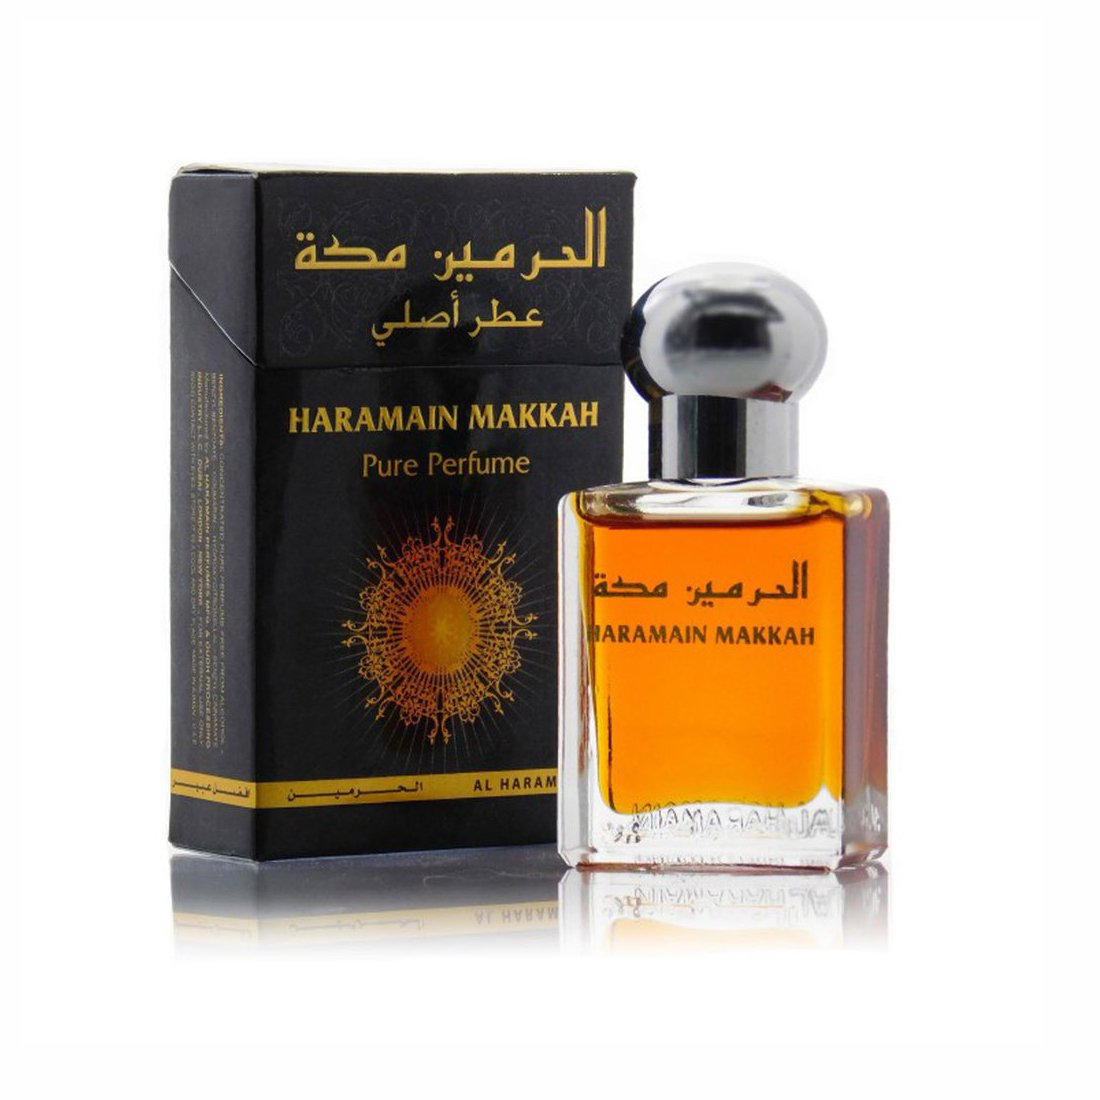 Al Haramain Makkah & Hajar Fragrance Pure Original Roll on Perfume Oil Pack of 2 (Attar) - 2 x 15 ml